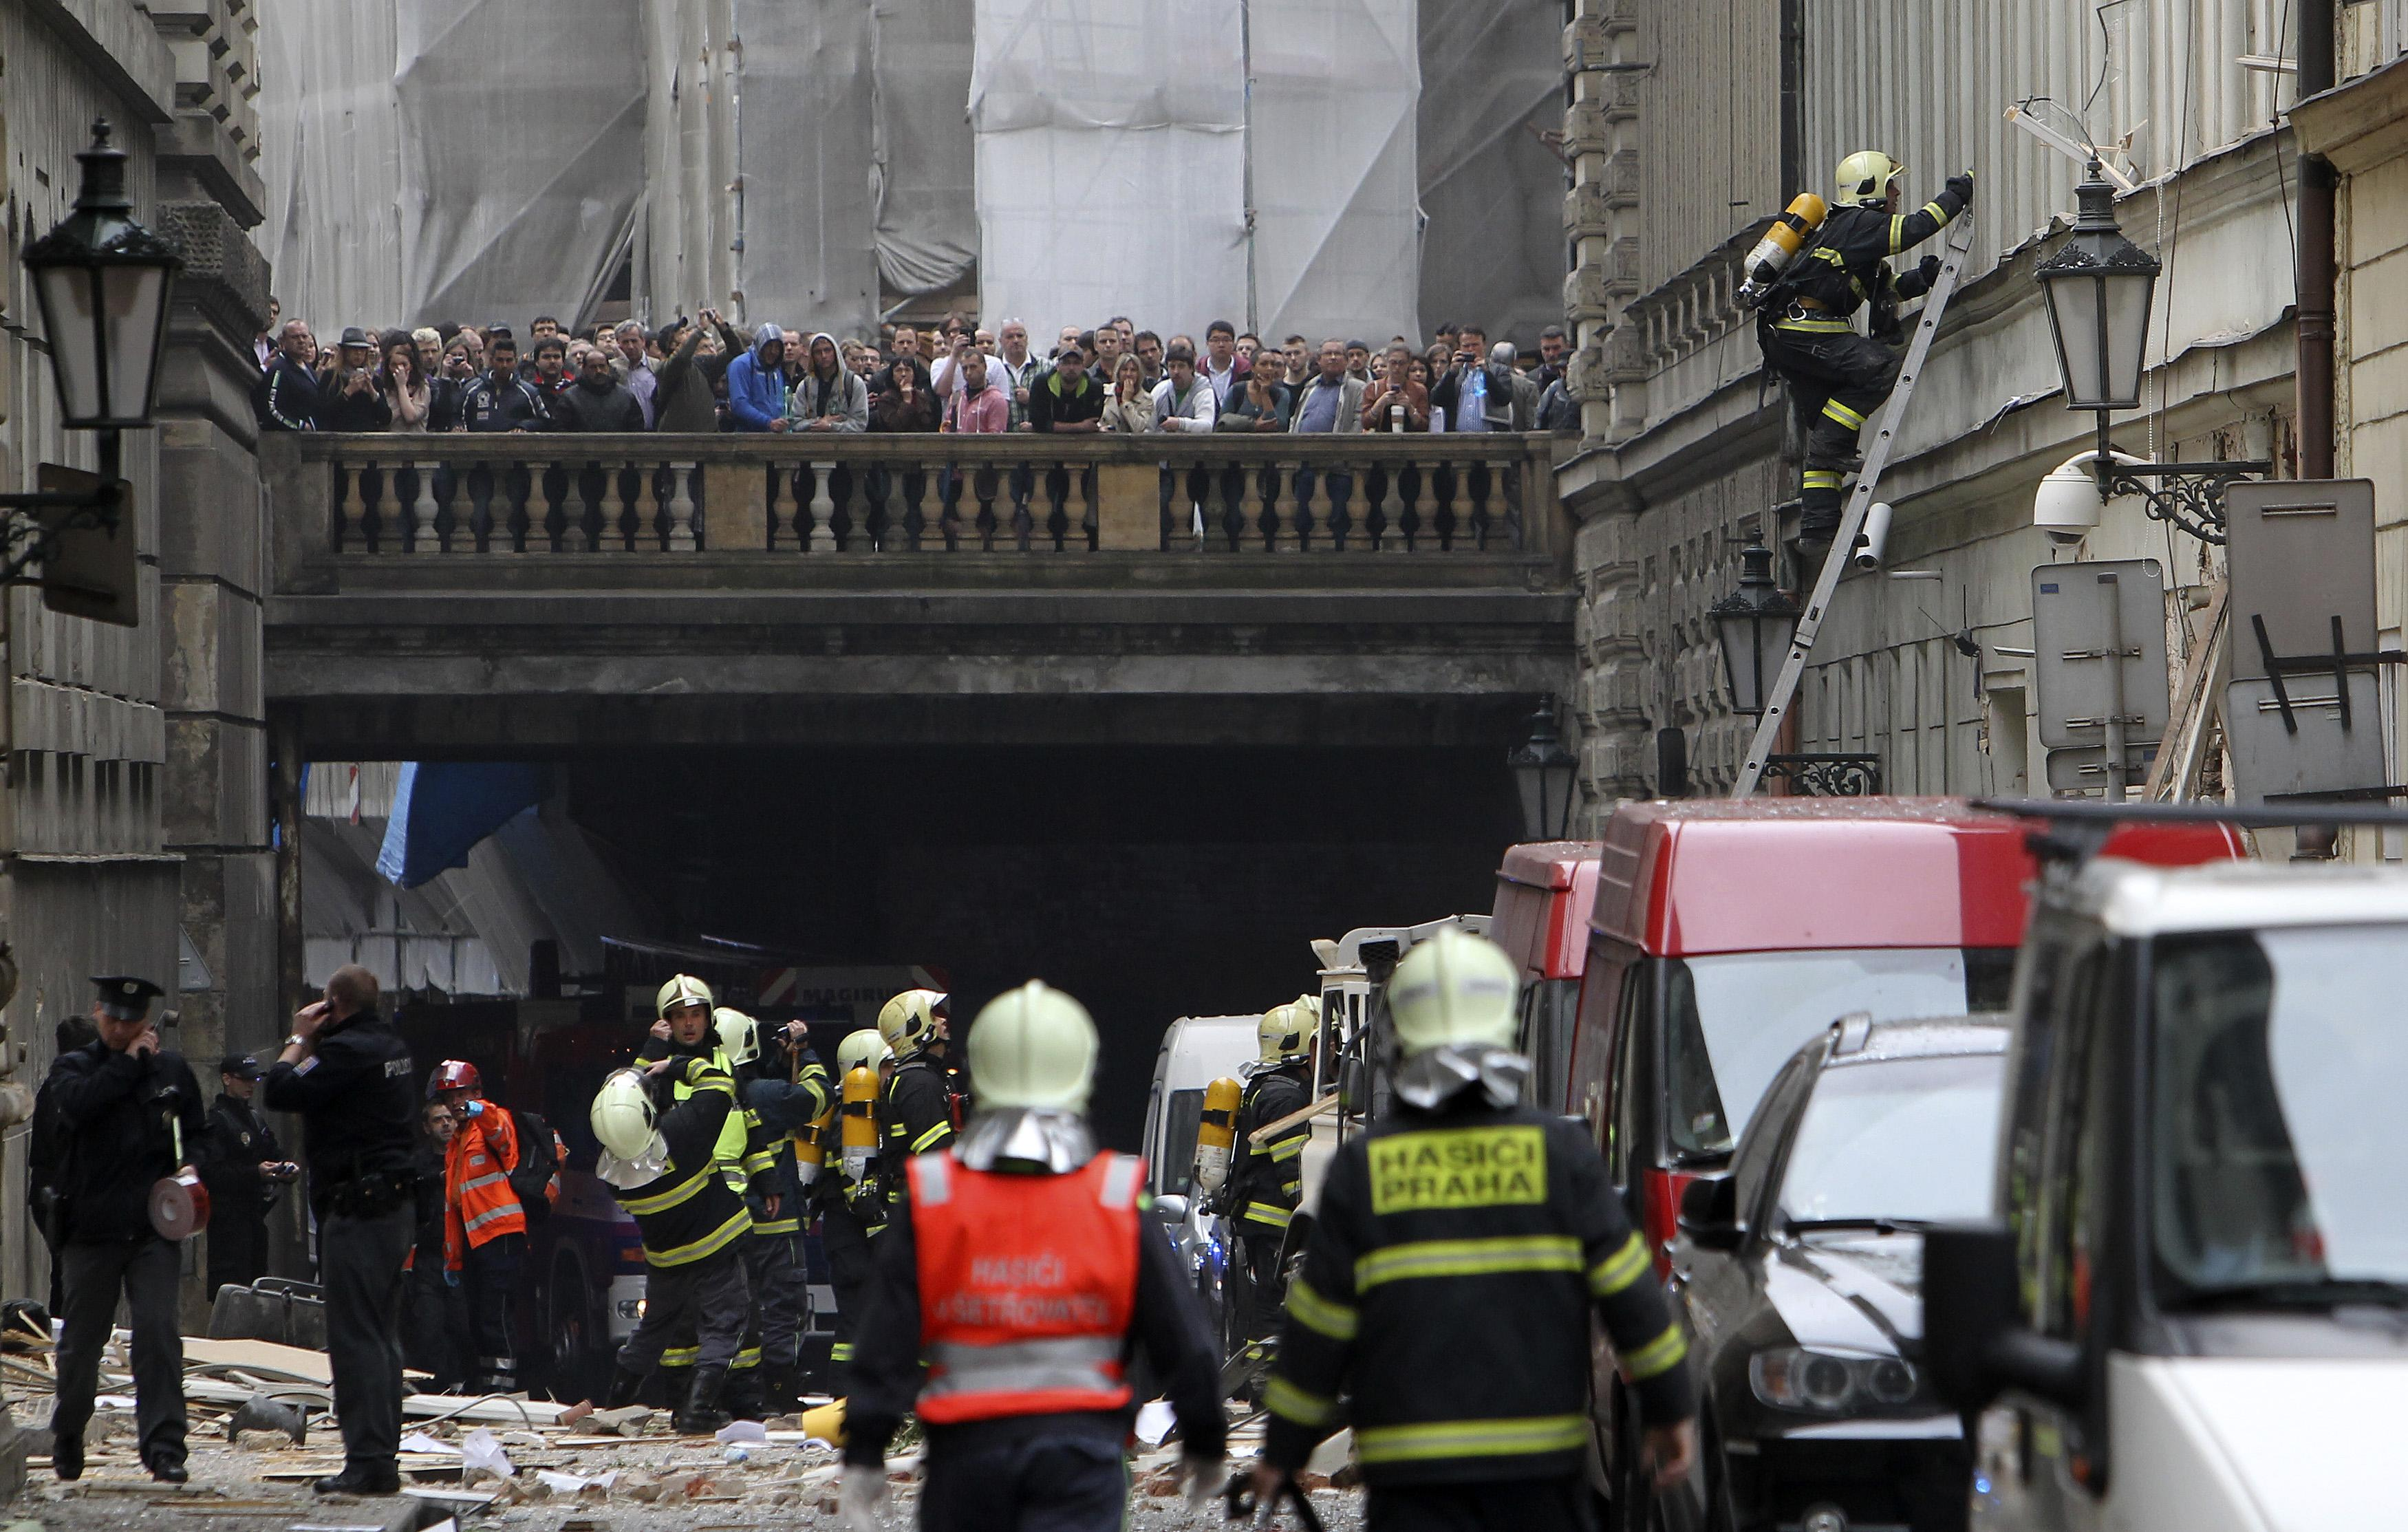 Firefighters on the scene of explosion in Prague.